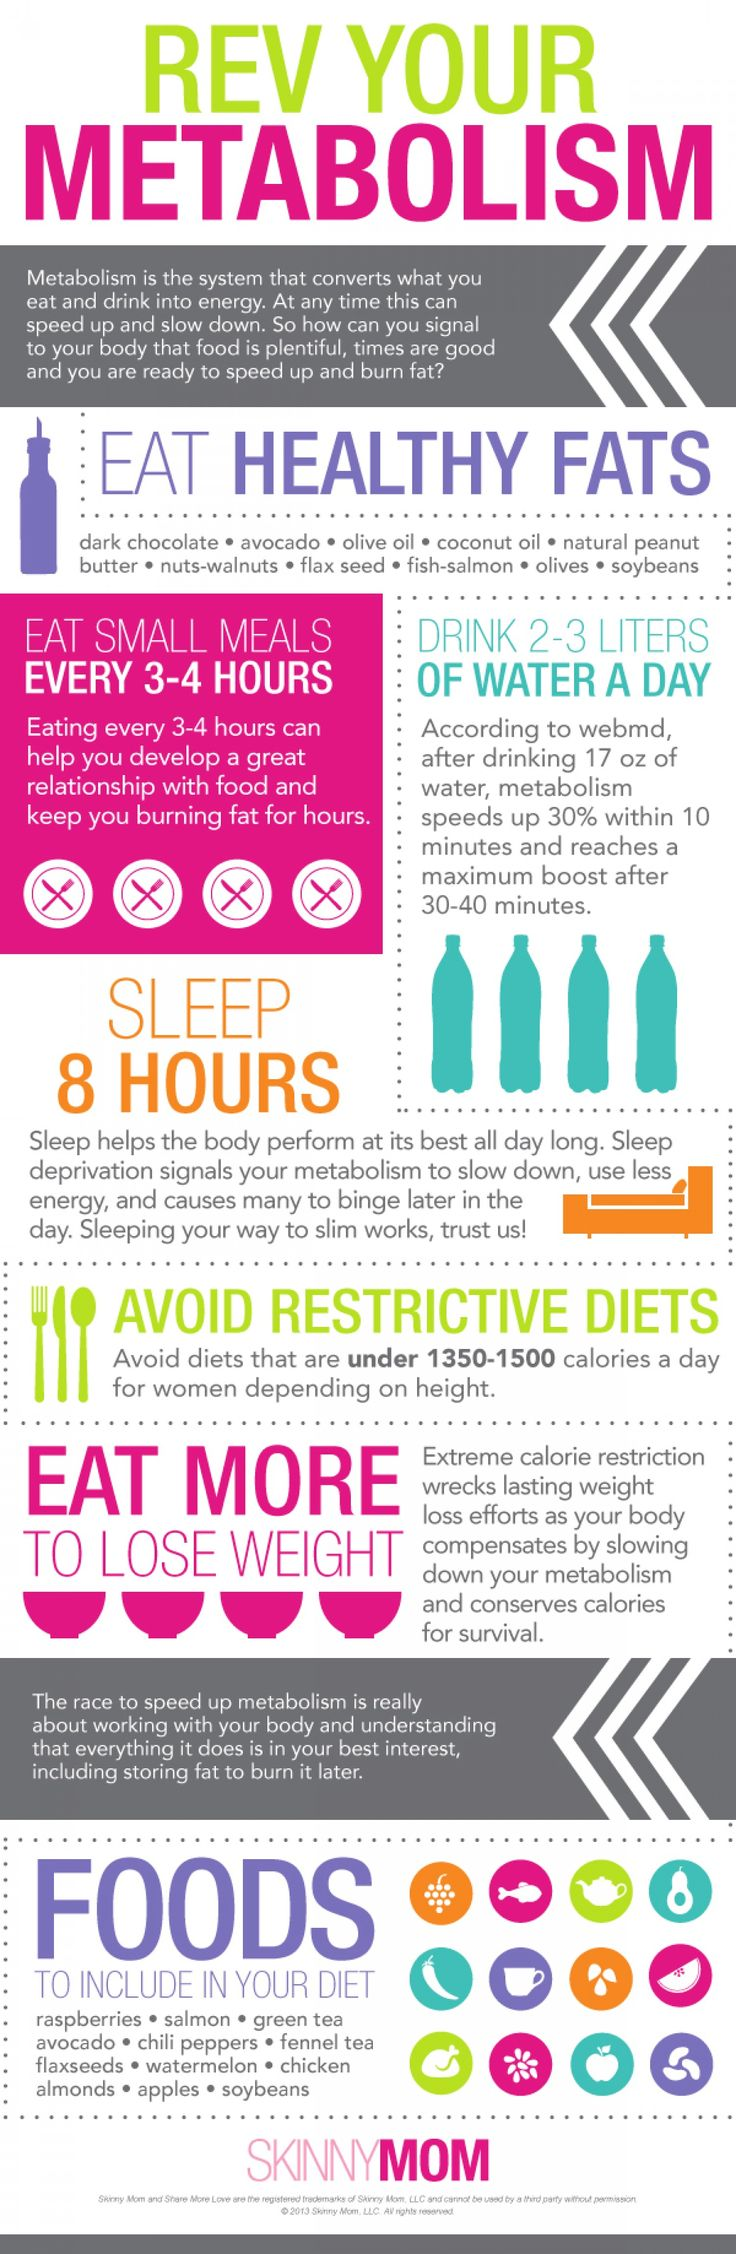 Rev Your Metabolism! The Secret to a Super Fast Metabolism | Skinny Mom | Where Moms Get The Skinny On Healthy Living! Boost your metabolism to as aid weight loss